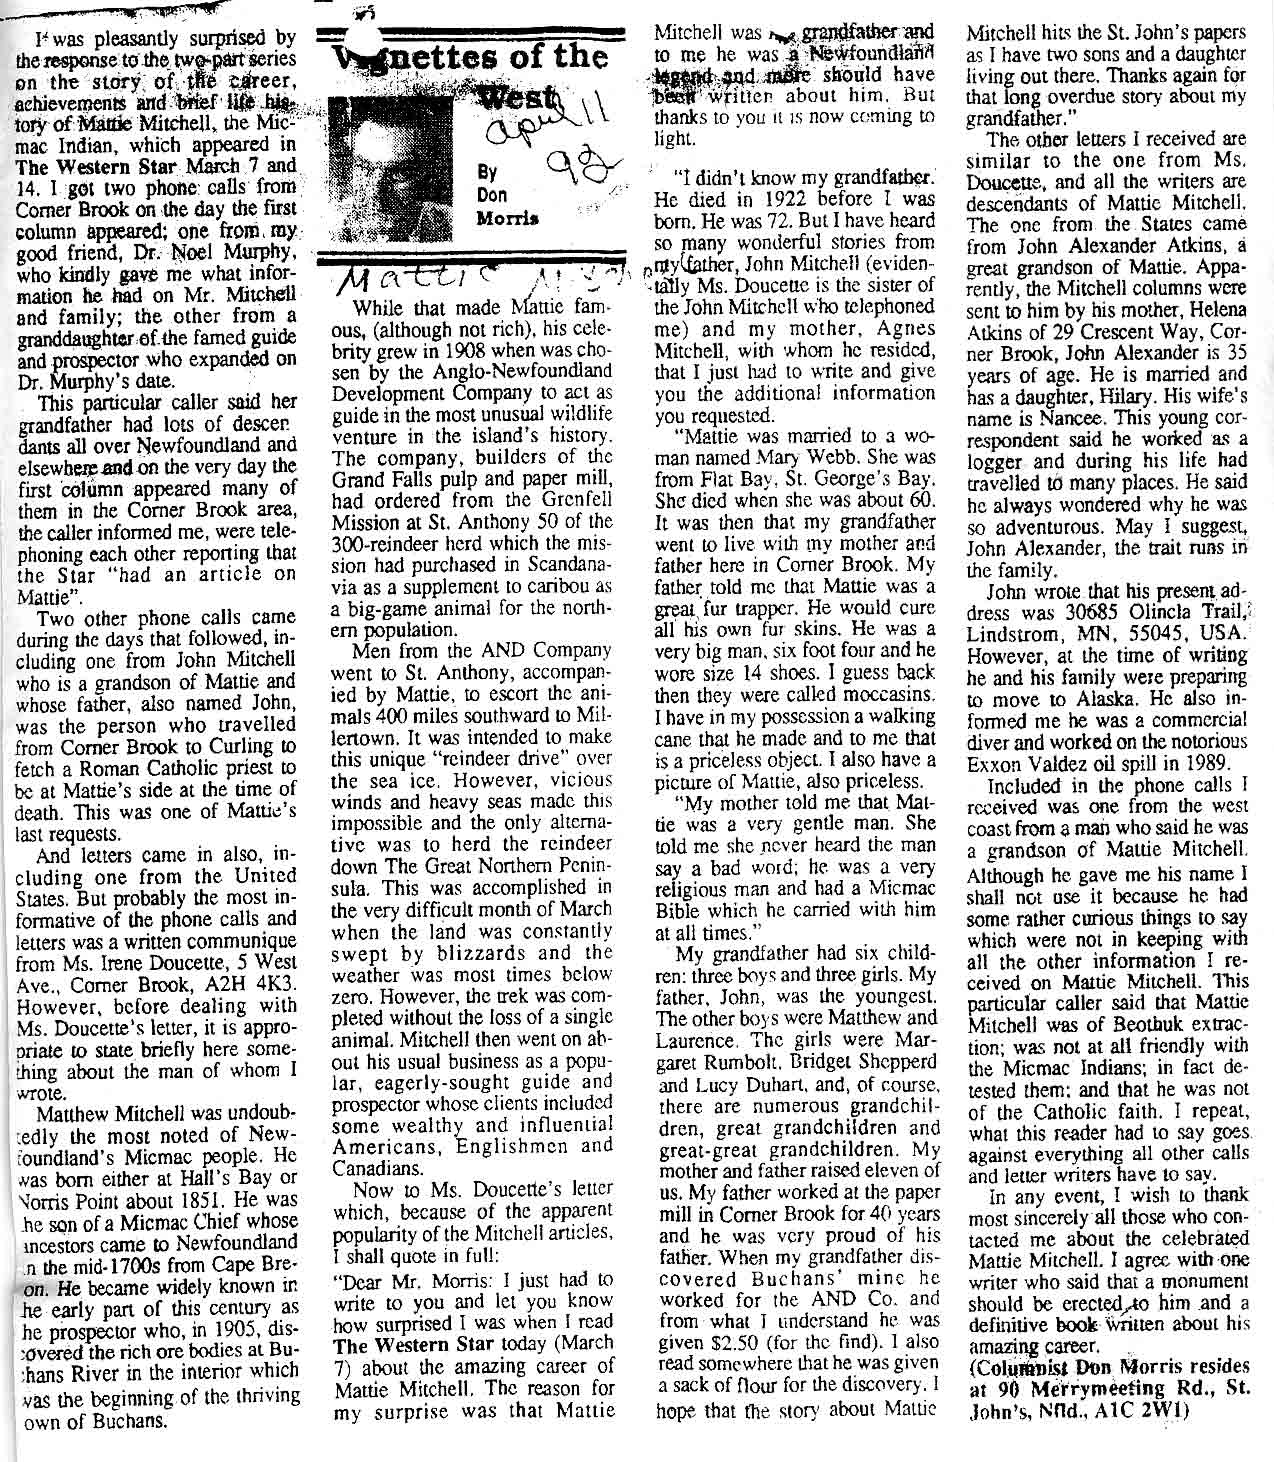 don morris-mattie-mitchell column-pt 3